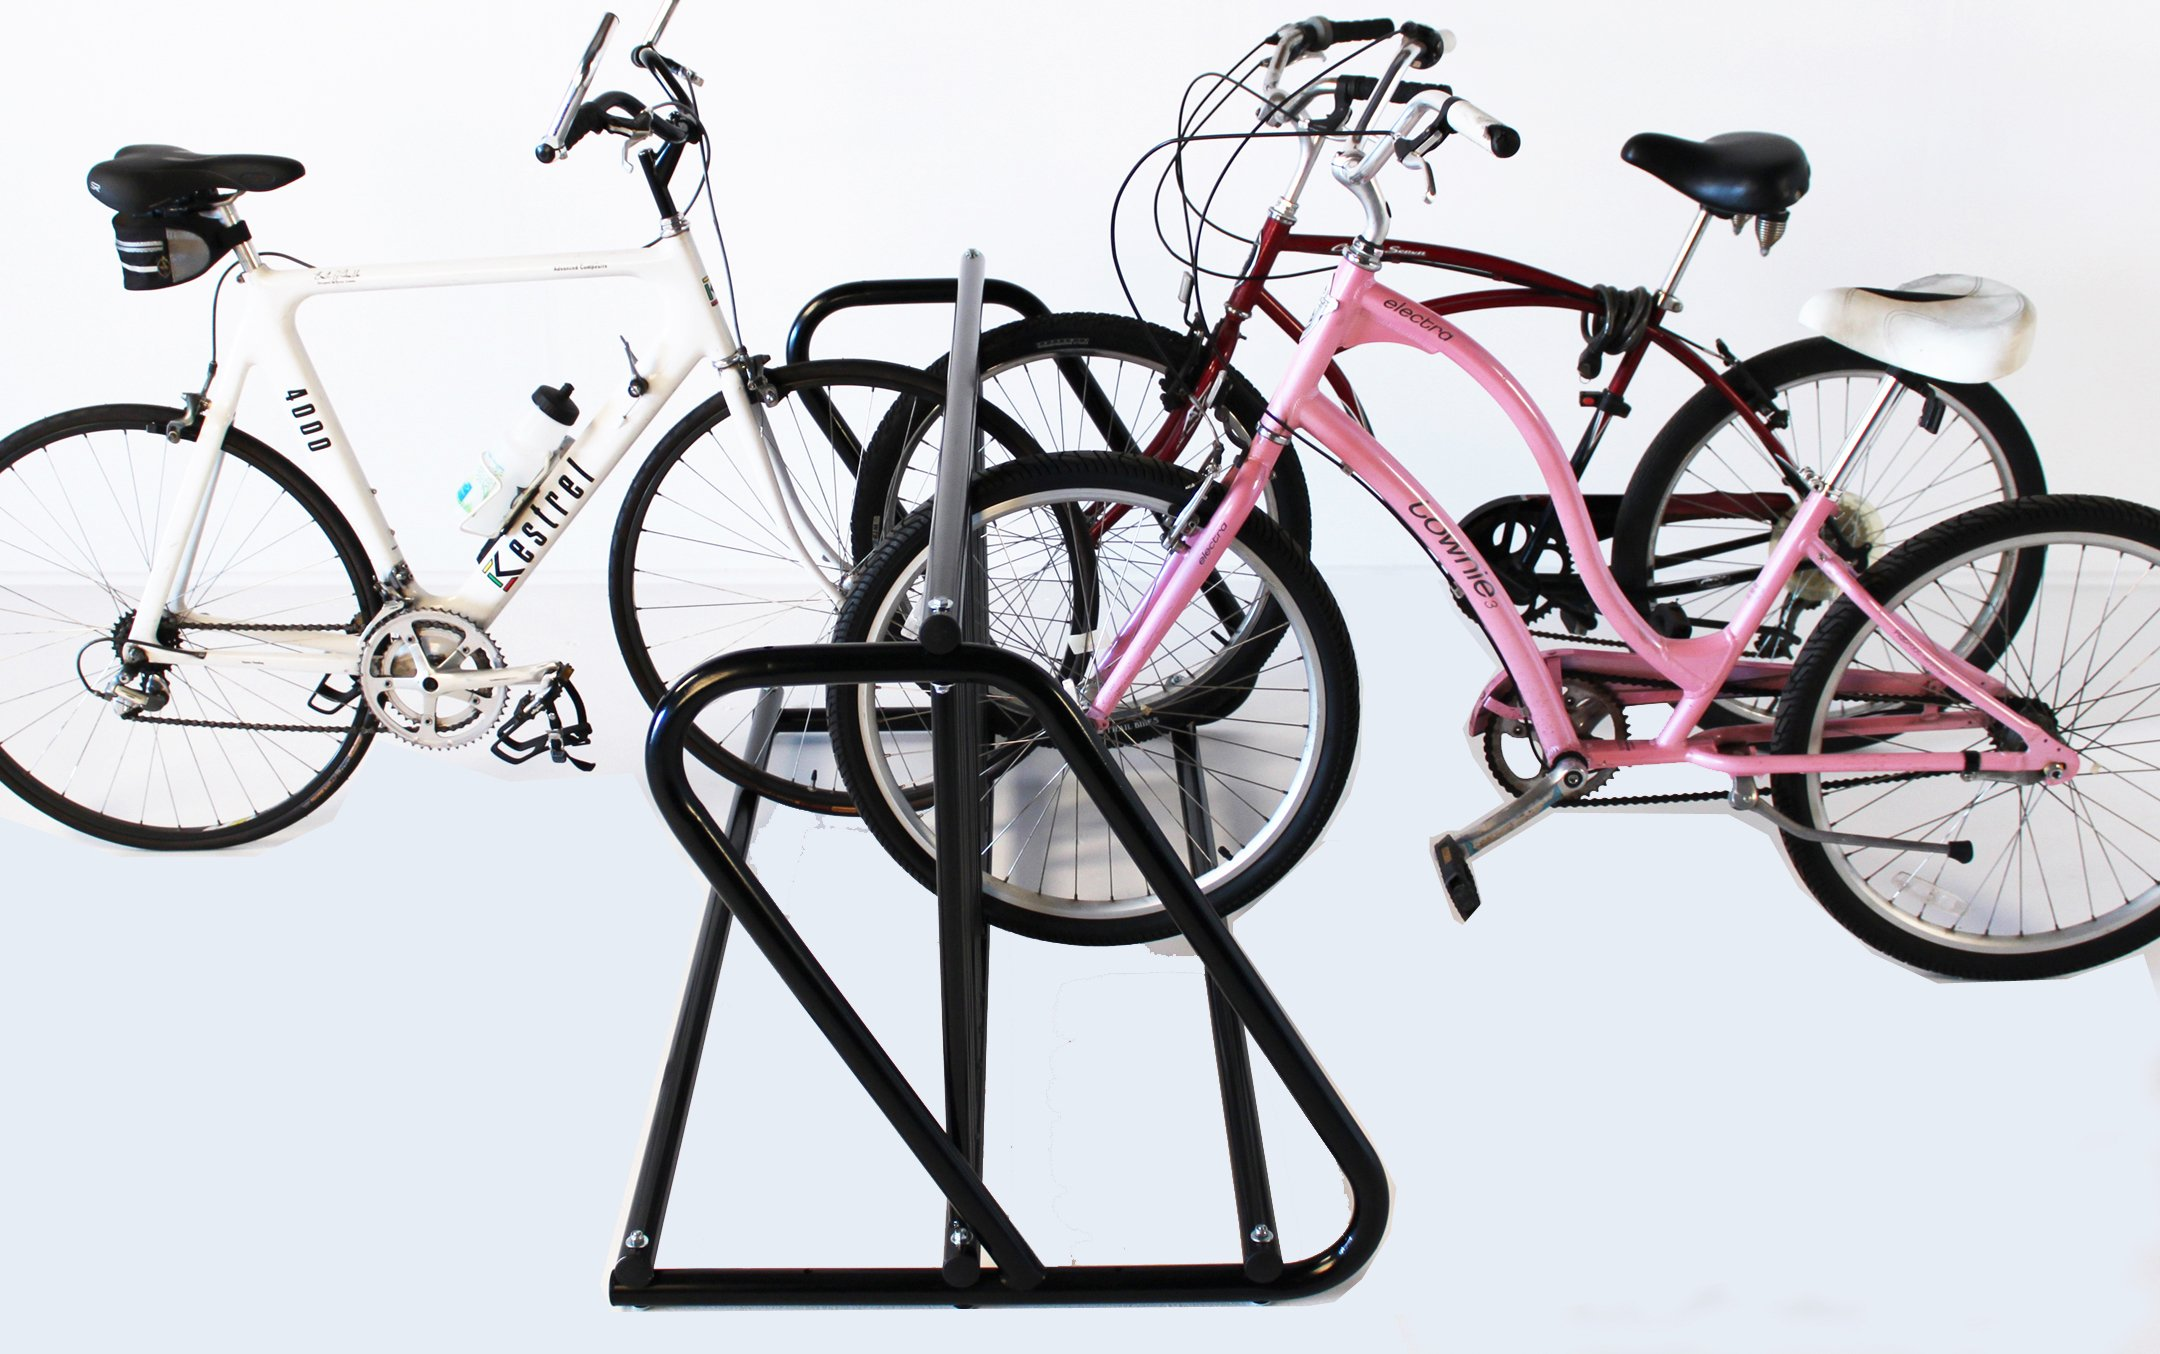 Hollywood Racks Dual Use 5-10 Bike Commercial Parking Rack by Hollywood Racks (Image #2)